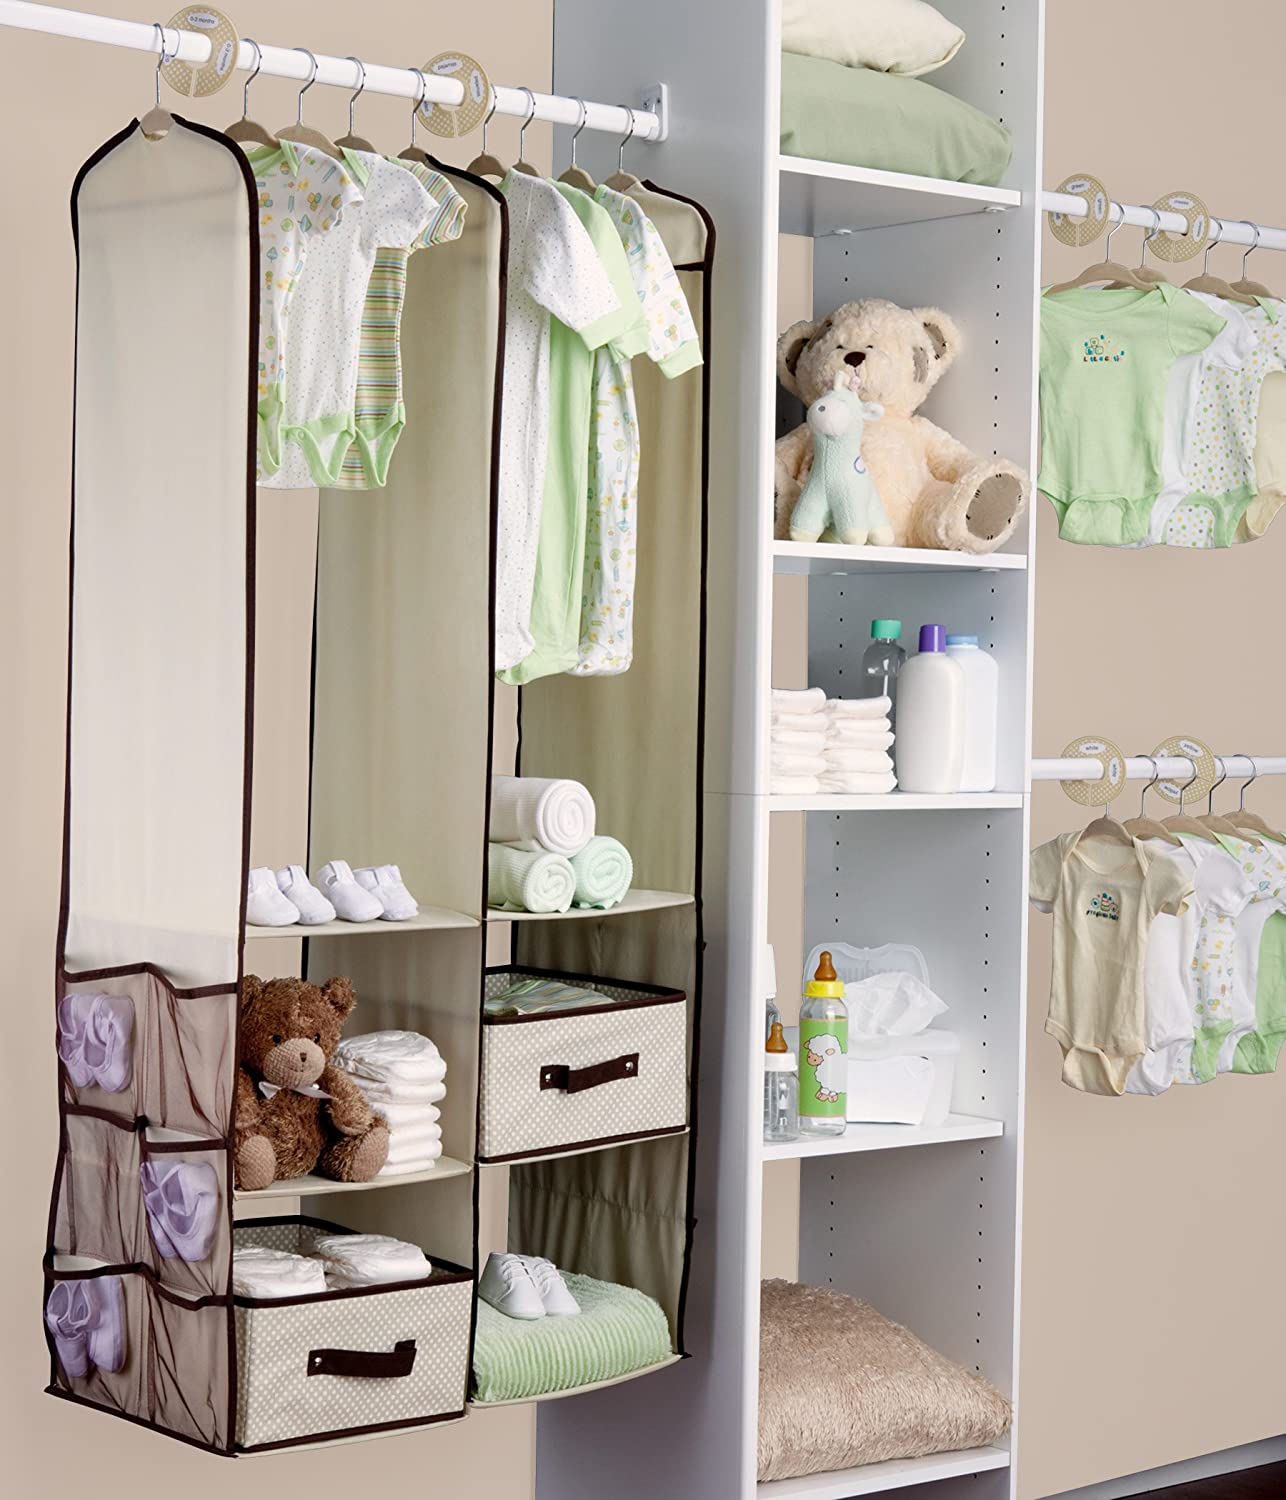 Amazon.com : Delta Children Nursery Closet Organizer, Beige, 24 piece :  Closet Storage And Organization Systems : Baby